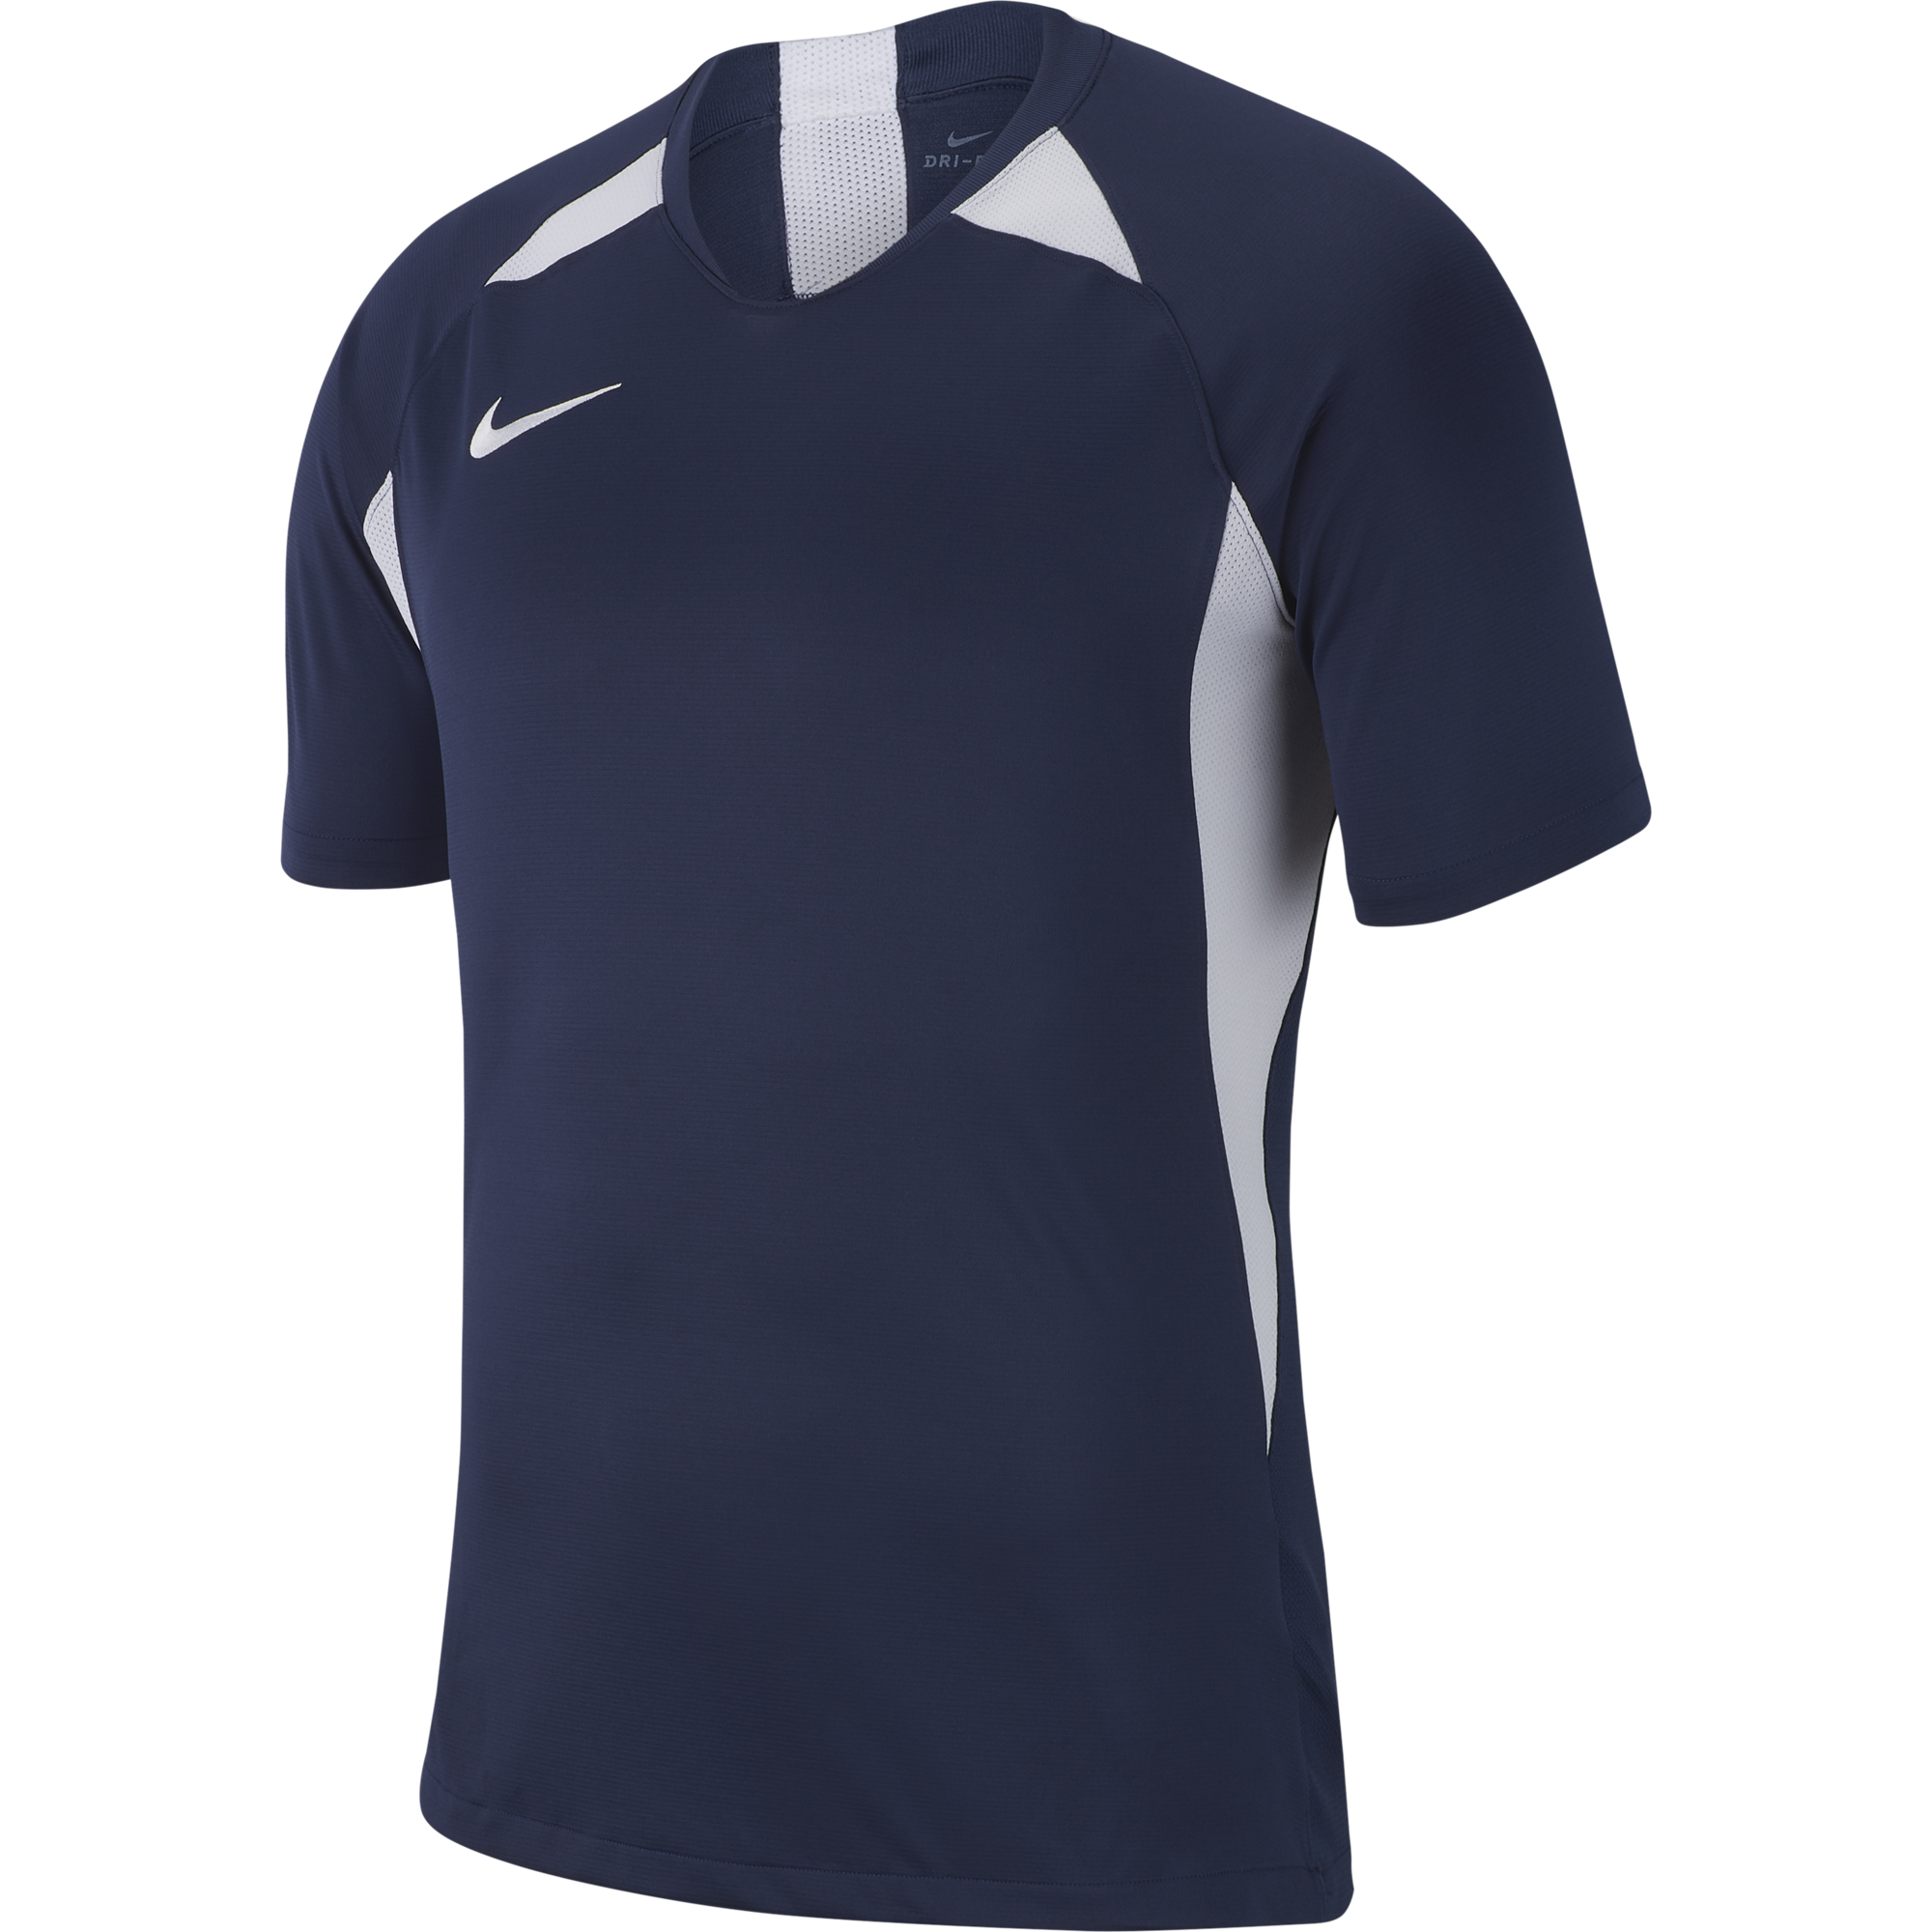 Nike Legend jersey (midnight navy/white)